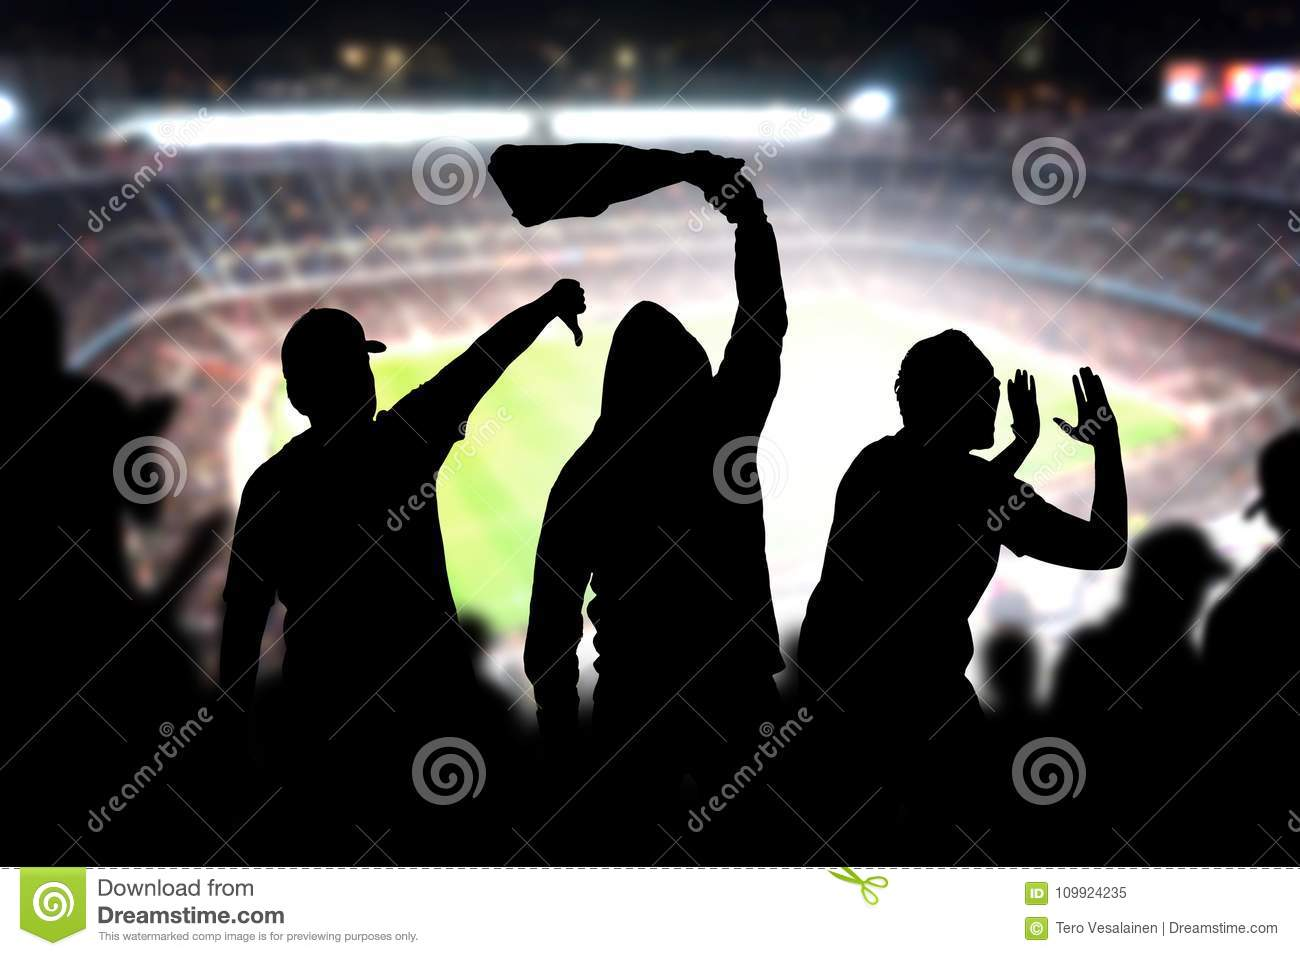 Football hooligans in game. Angry soccer fans.